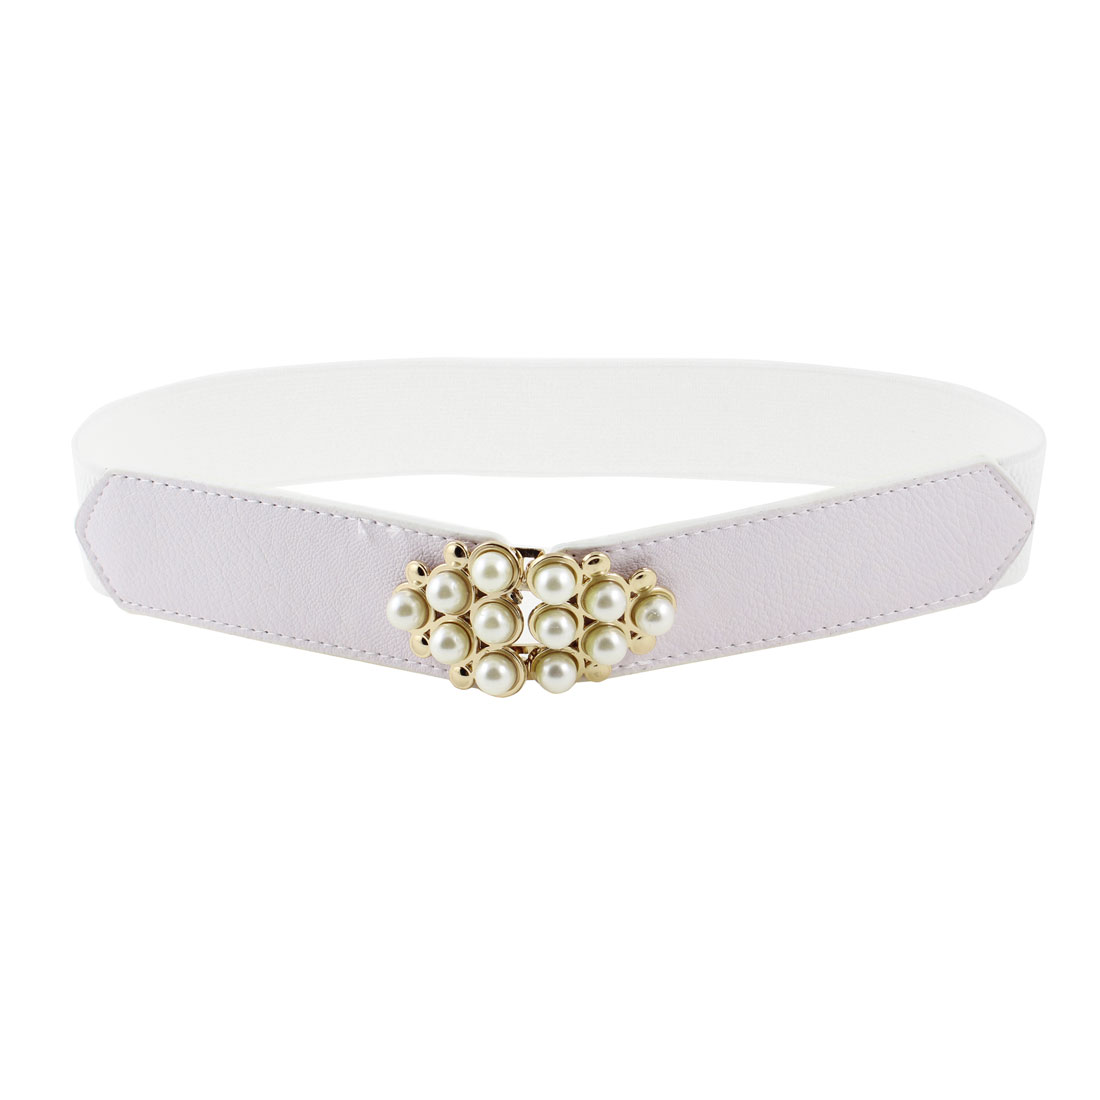 White Faux Pearl Metal Interlocking Buckle Elastic Band Waist Belt for Girls